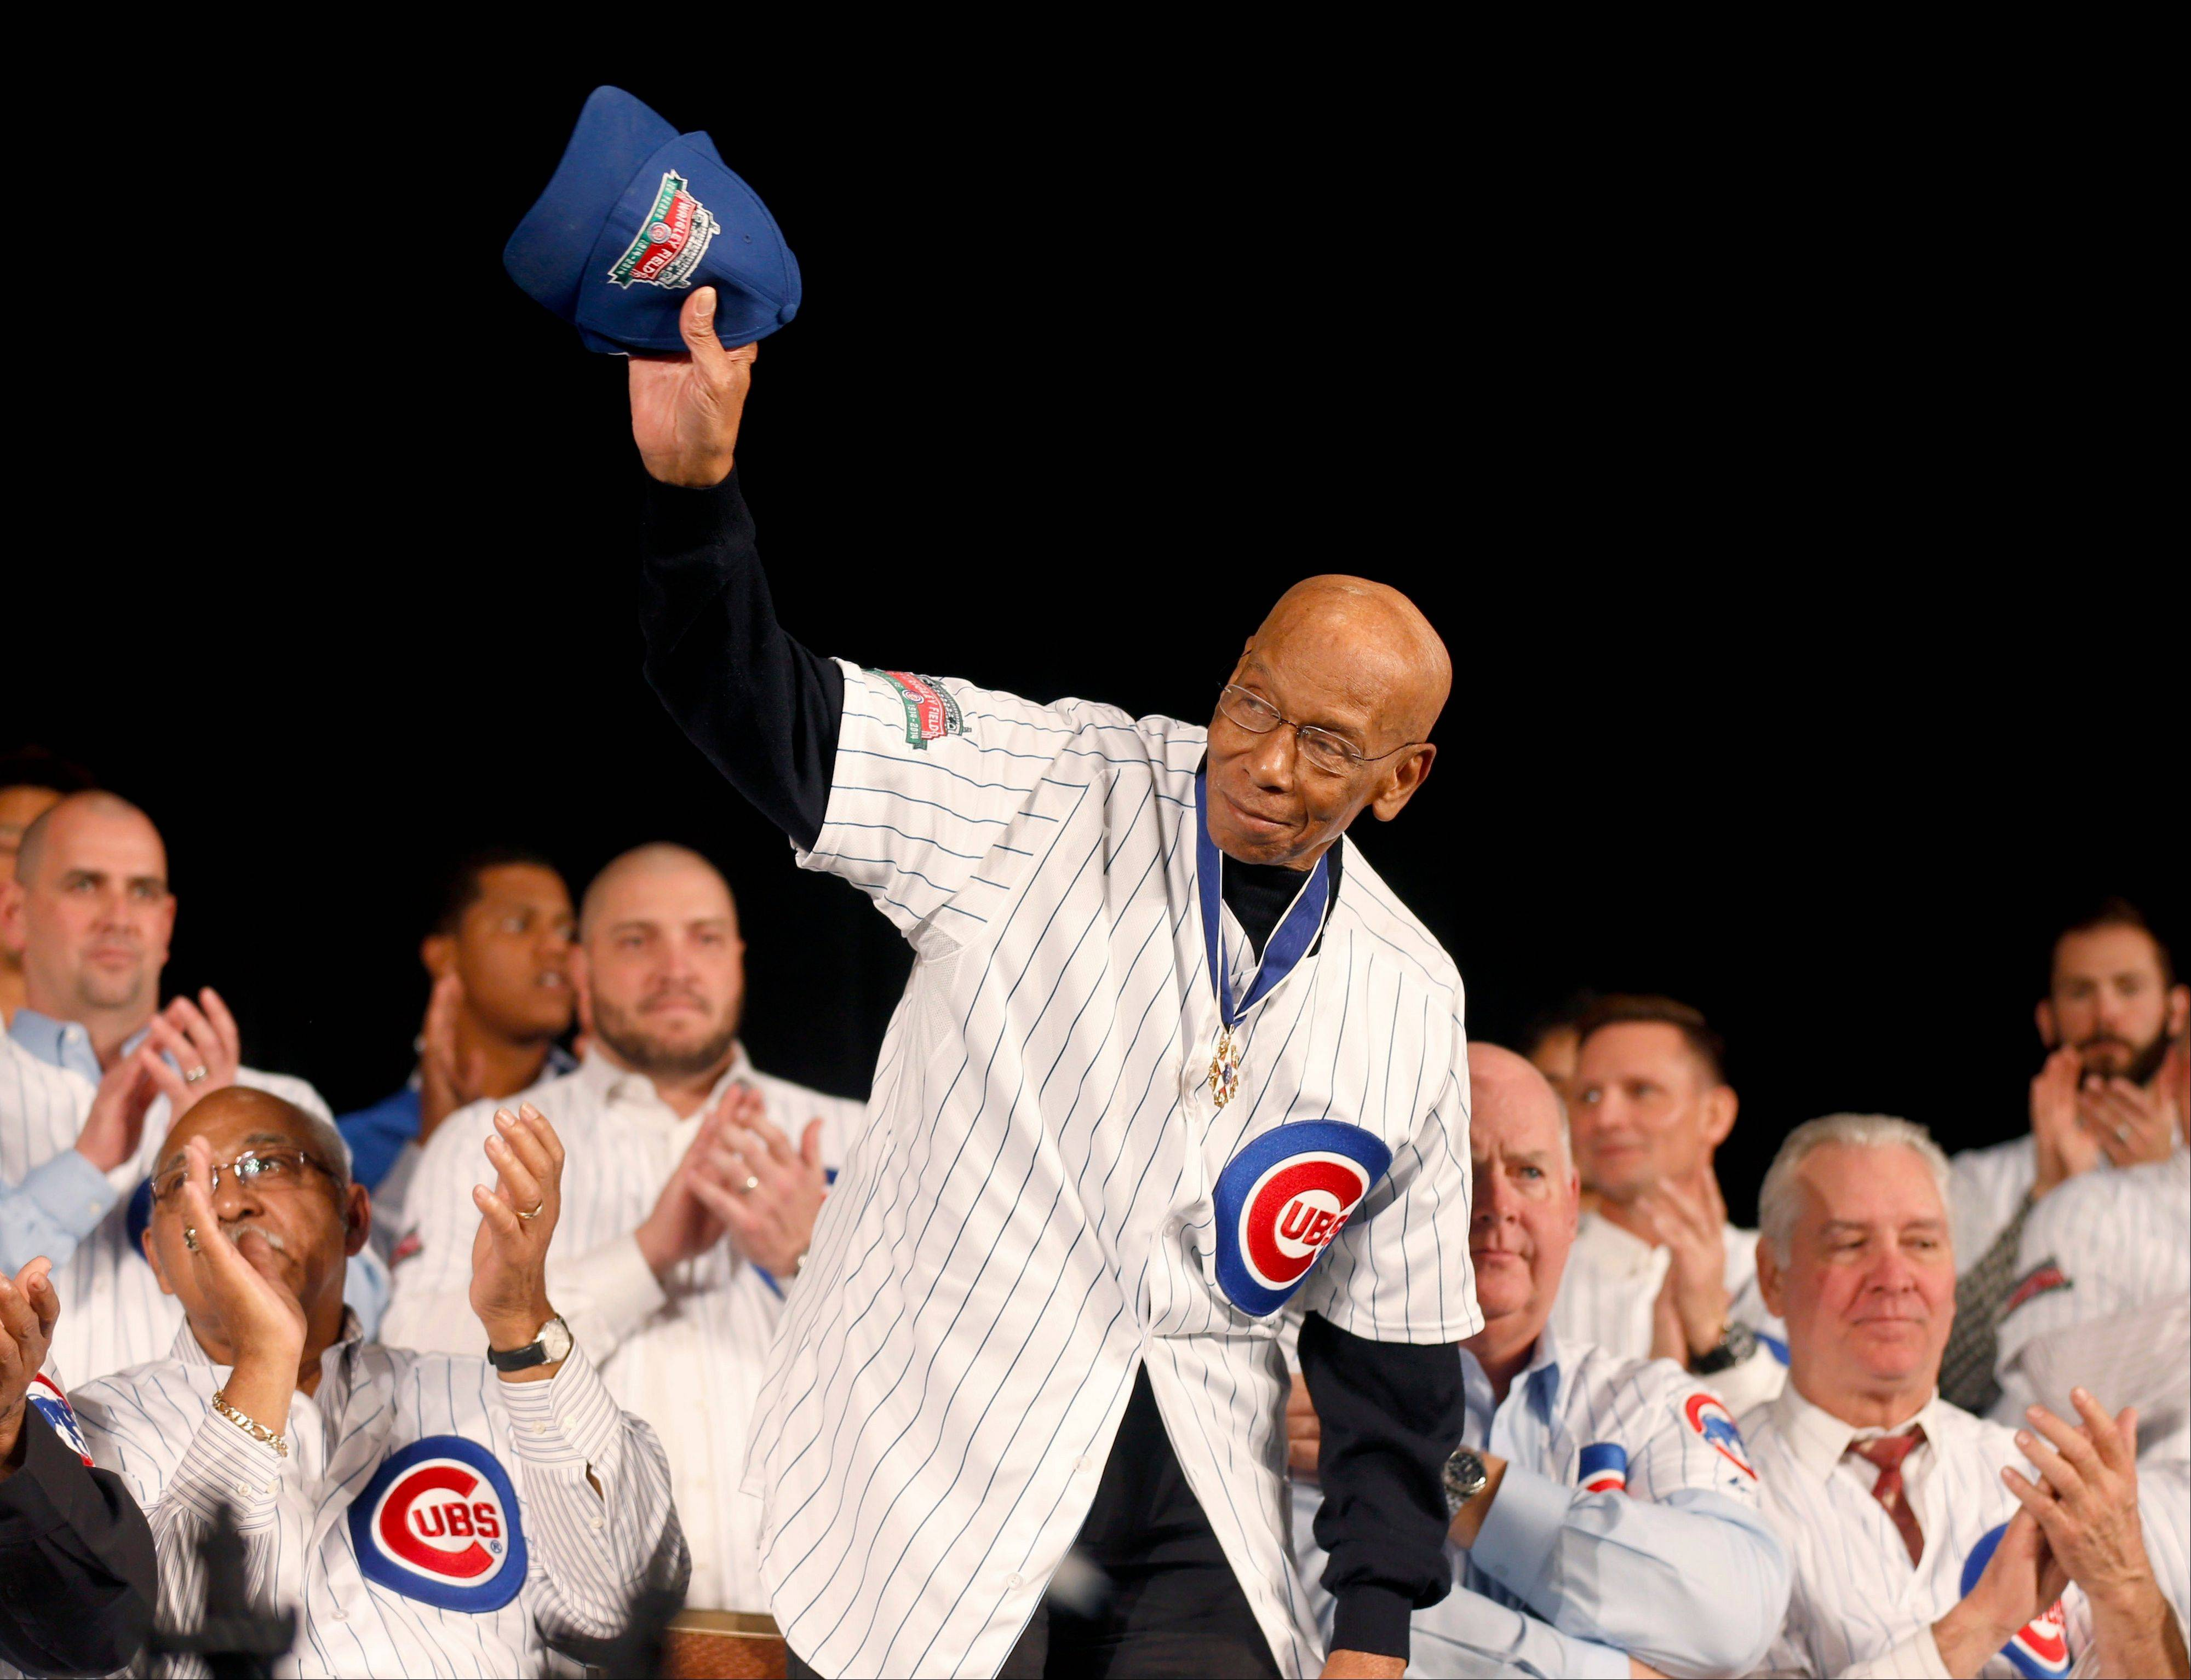 Mr. Cub Ernie Banks waves to the fans during the Cubs convention.